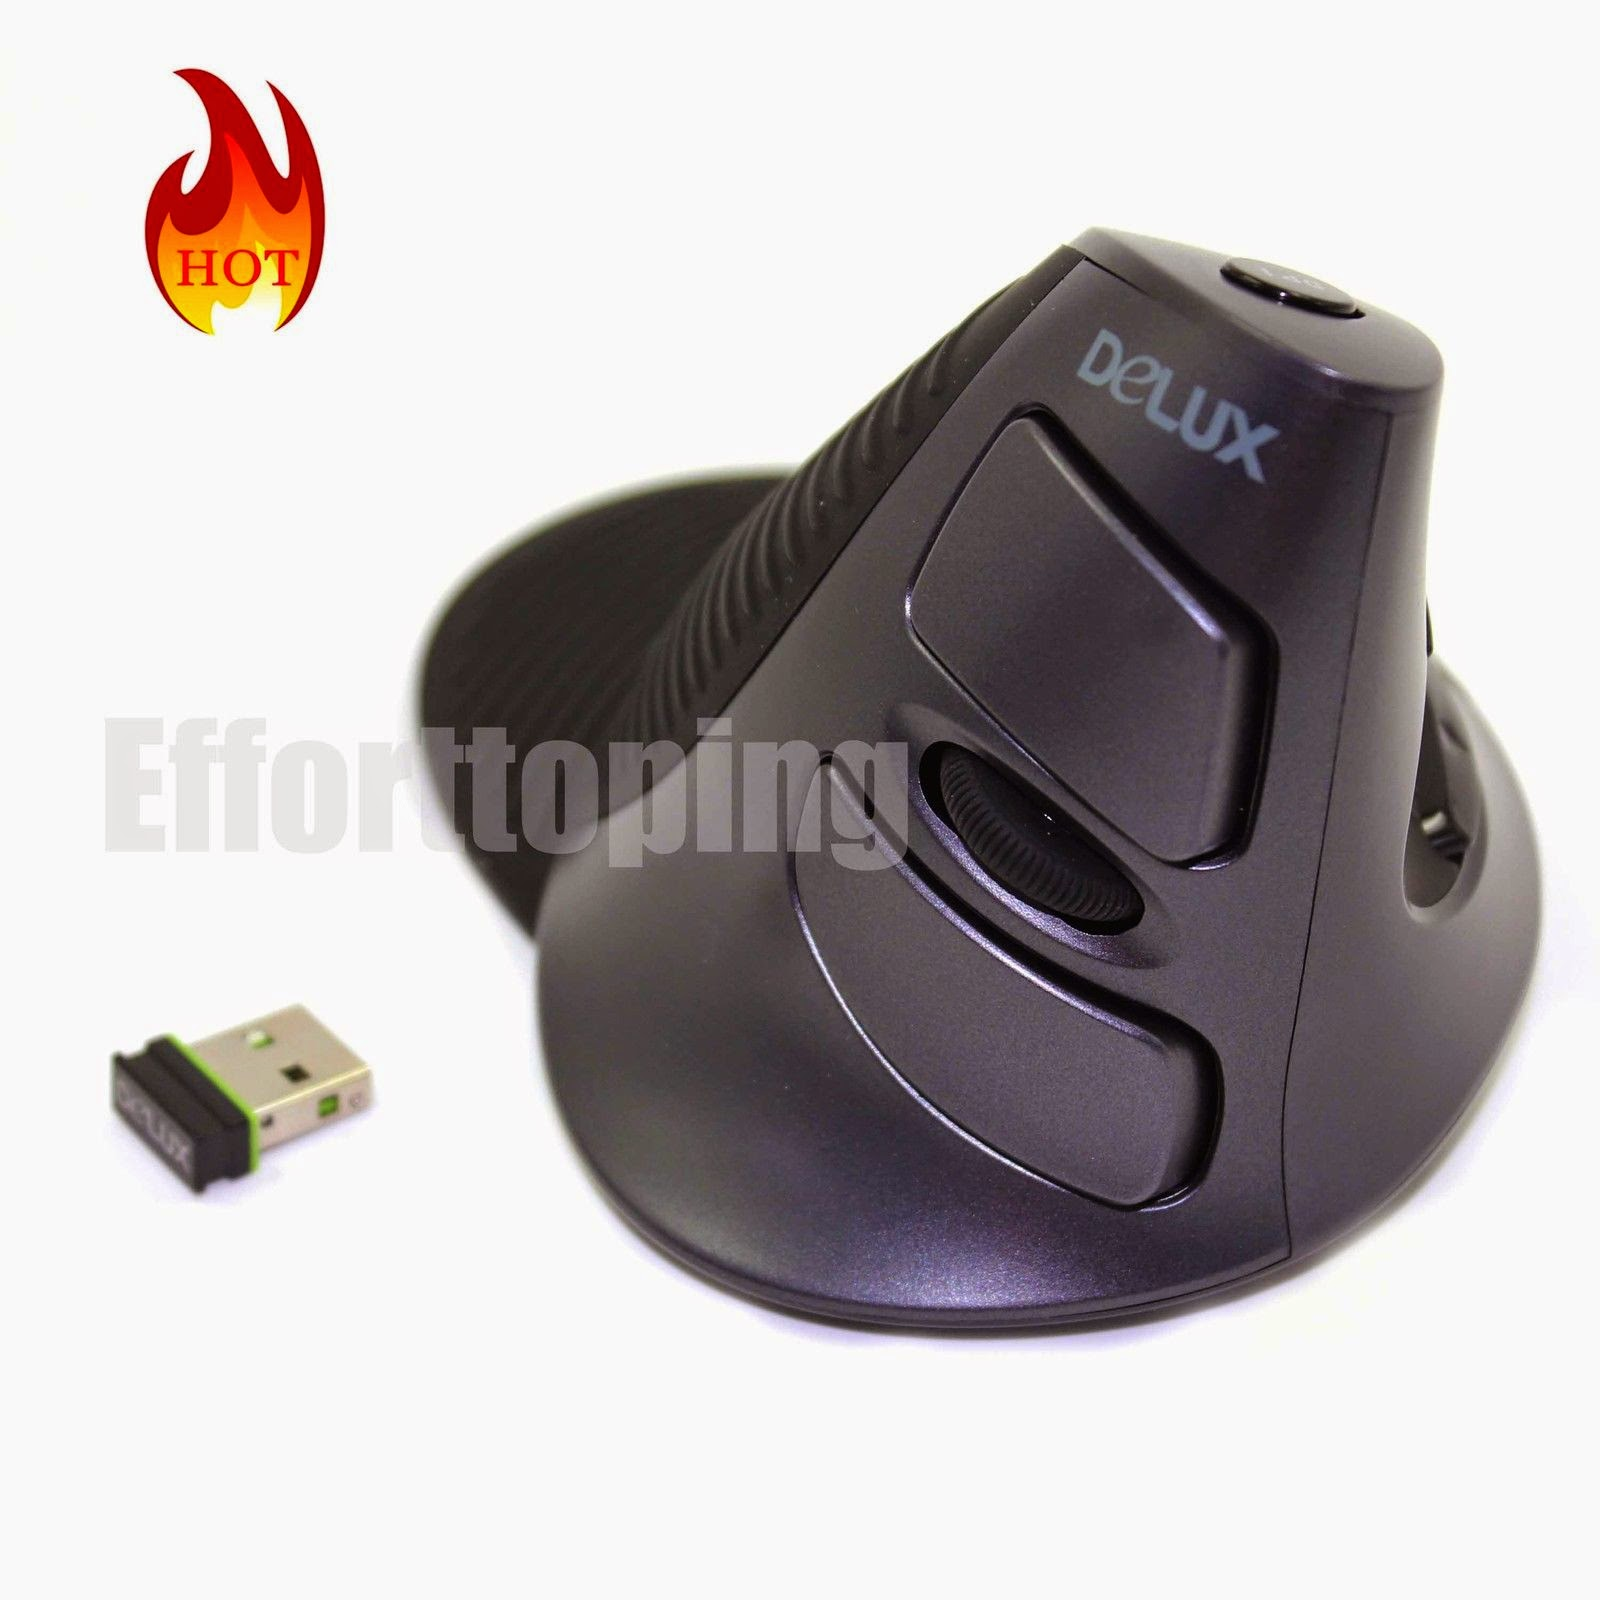 New Genuine Delux wireless 2.4Ghz M618 ergonomic vertical gaming Mouse laptop EF